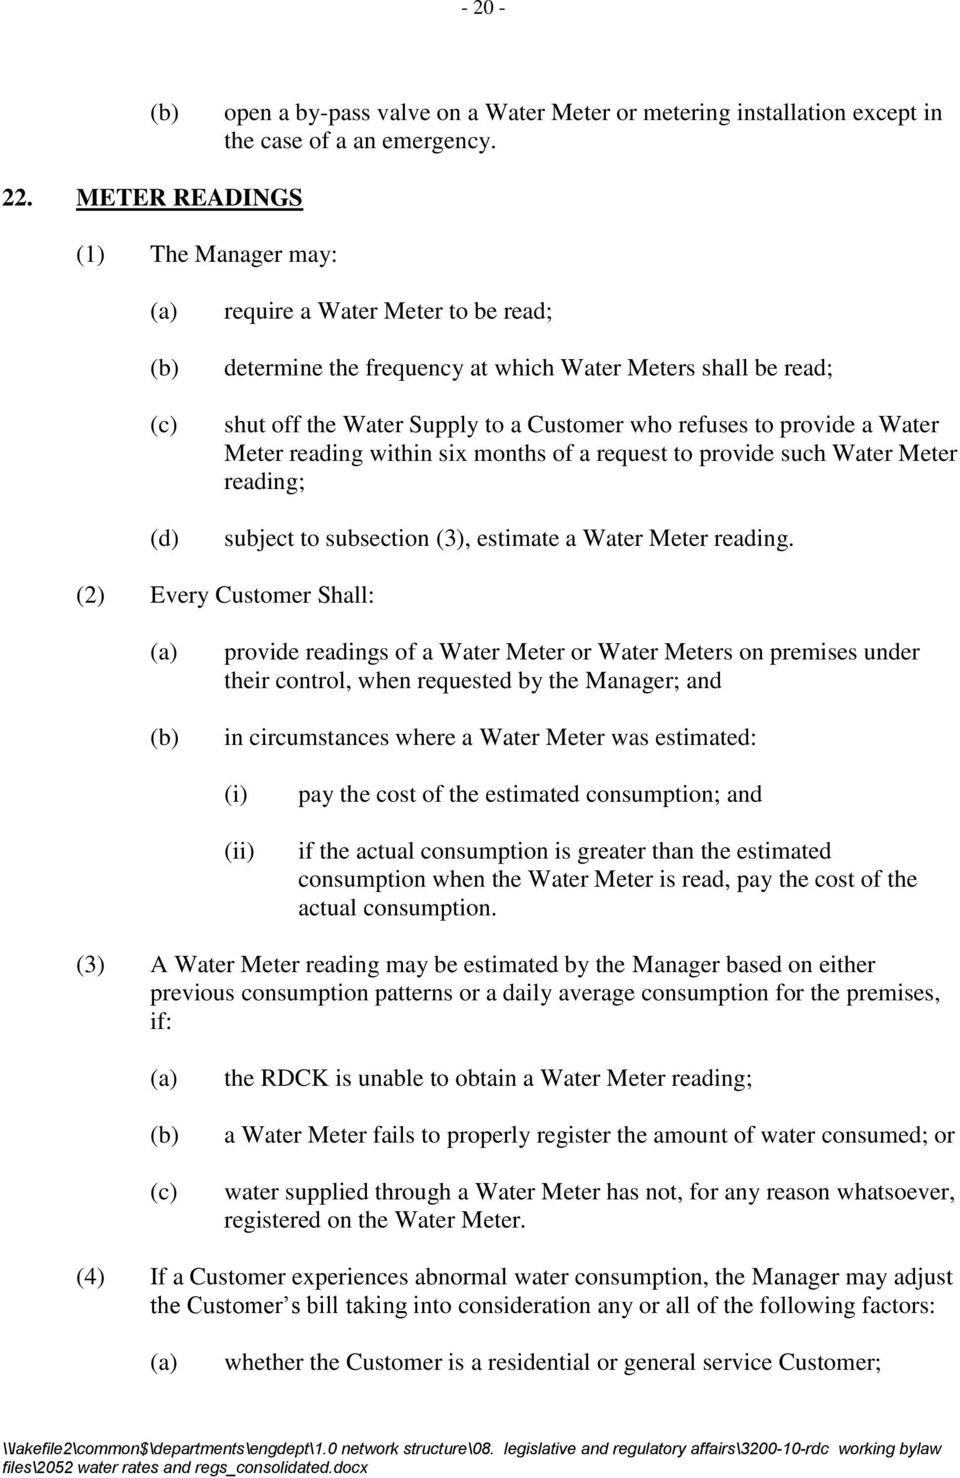 to provide a Water Meter reading within six months of a request to provide such Water Meter reading; subject to subsection (3), estimate a Water Meter reading.